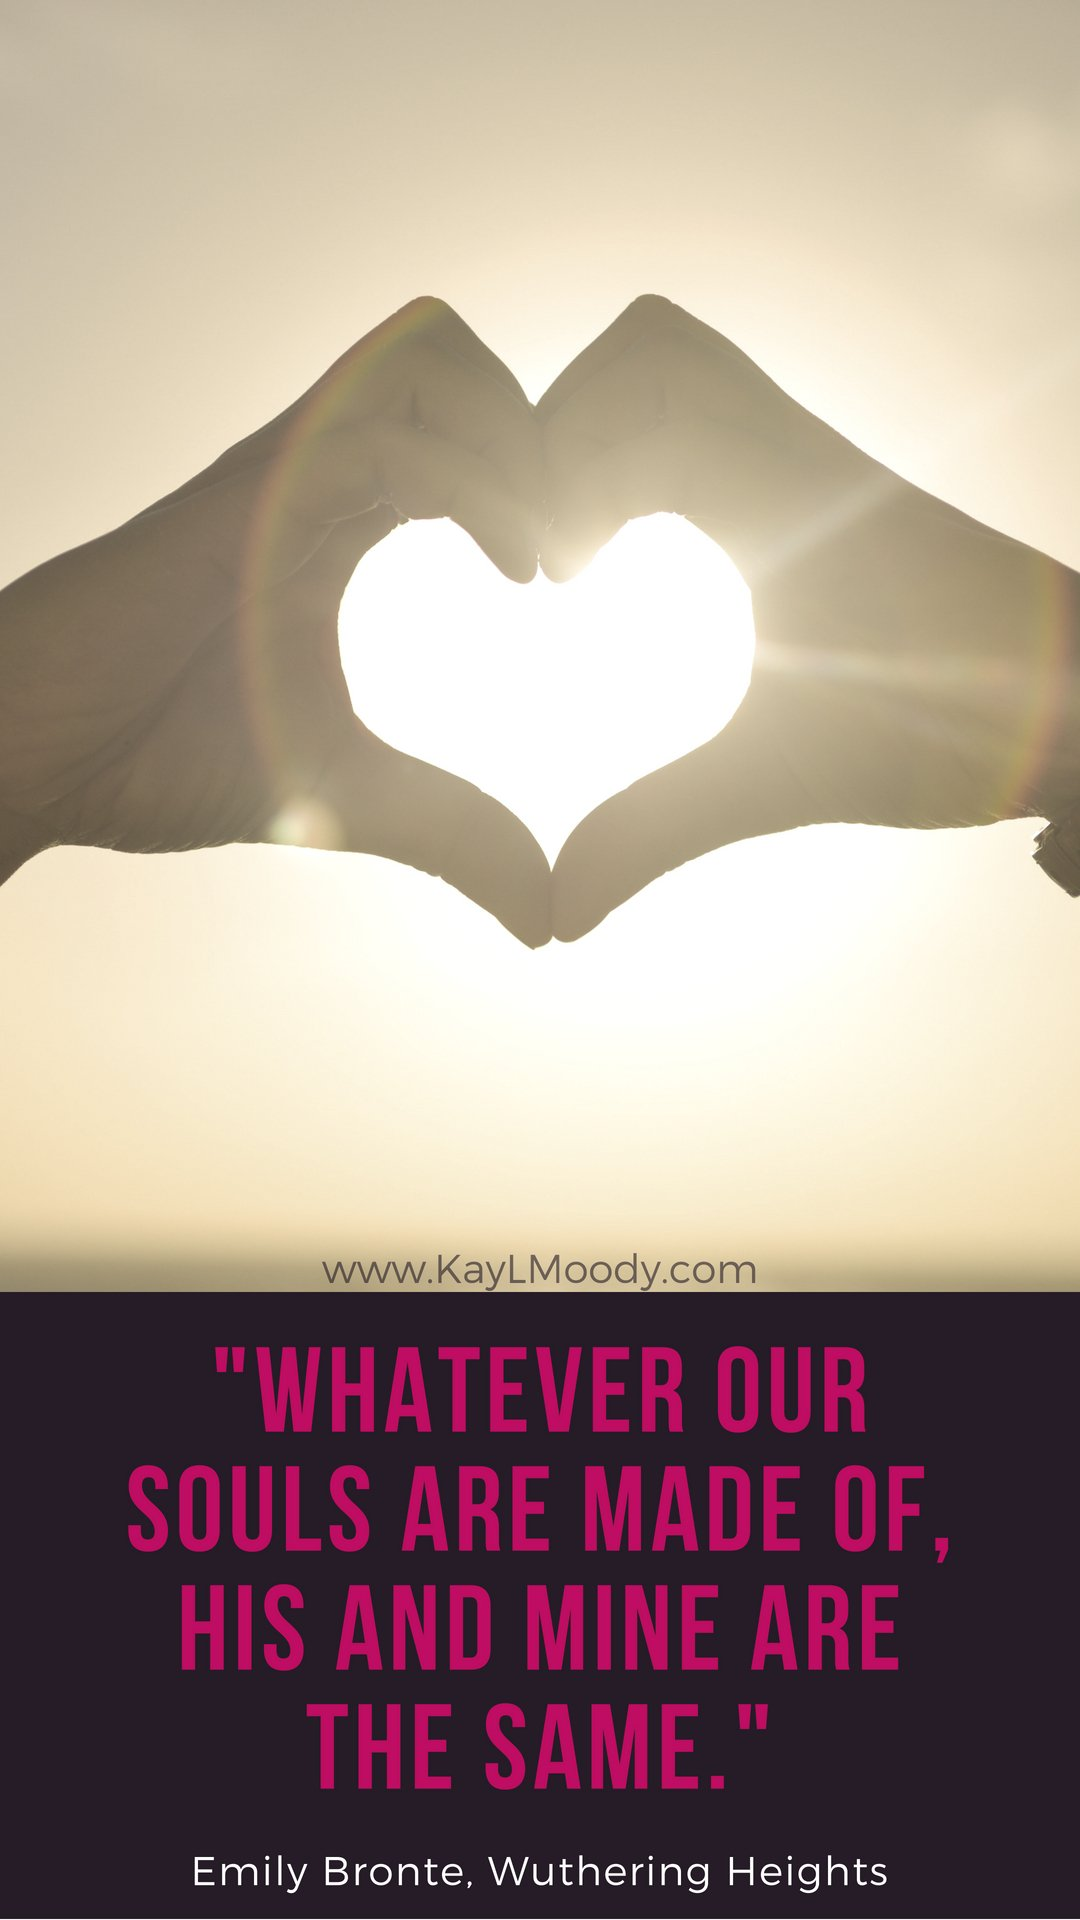 """Best book quotes, love quotes from books, sci fi book quotes, Harry Potter quotes, Dr. Seuss quotes, and more from Kay L Moody! """"Whatever our souls are made of, his and mine are the same."""" (Emily Bronte, Wuthering Heights)"""